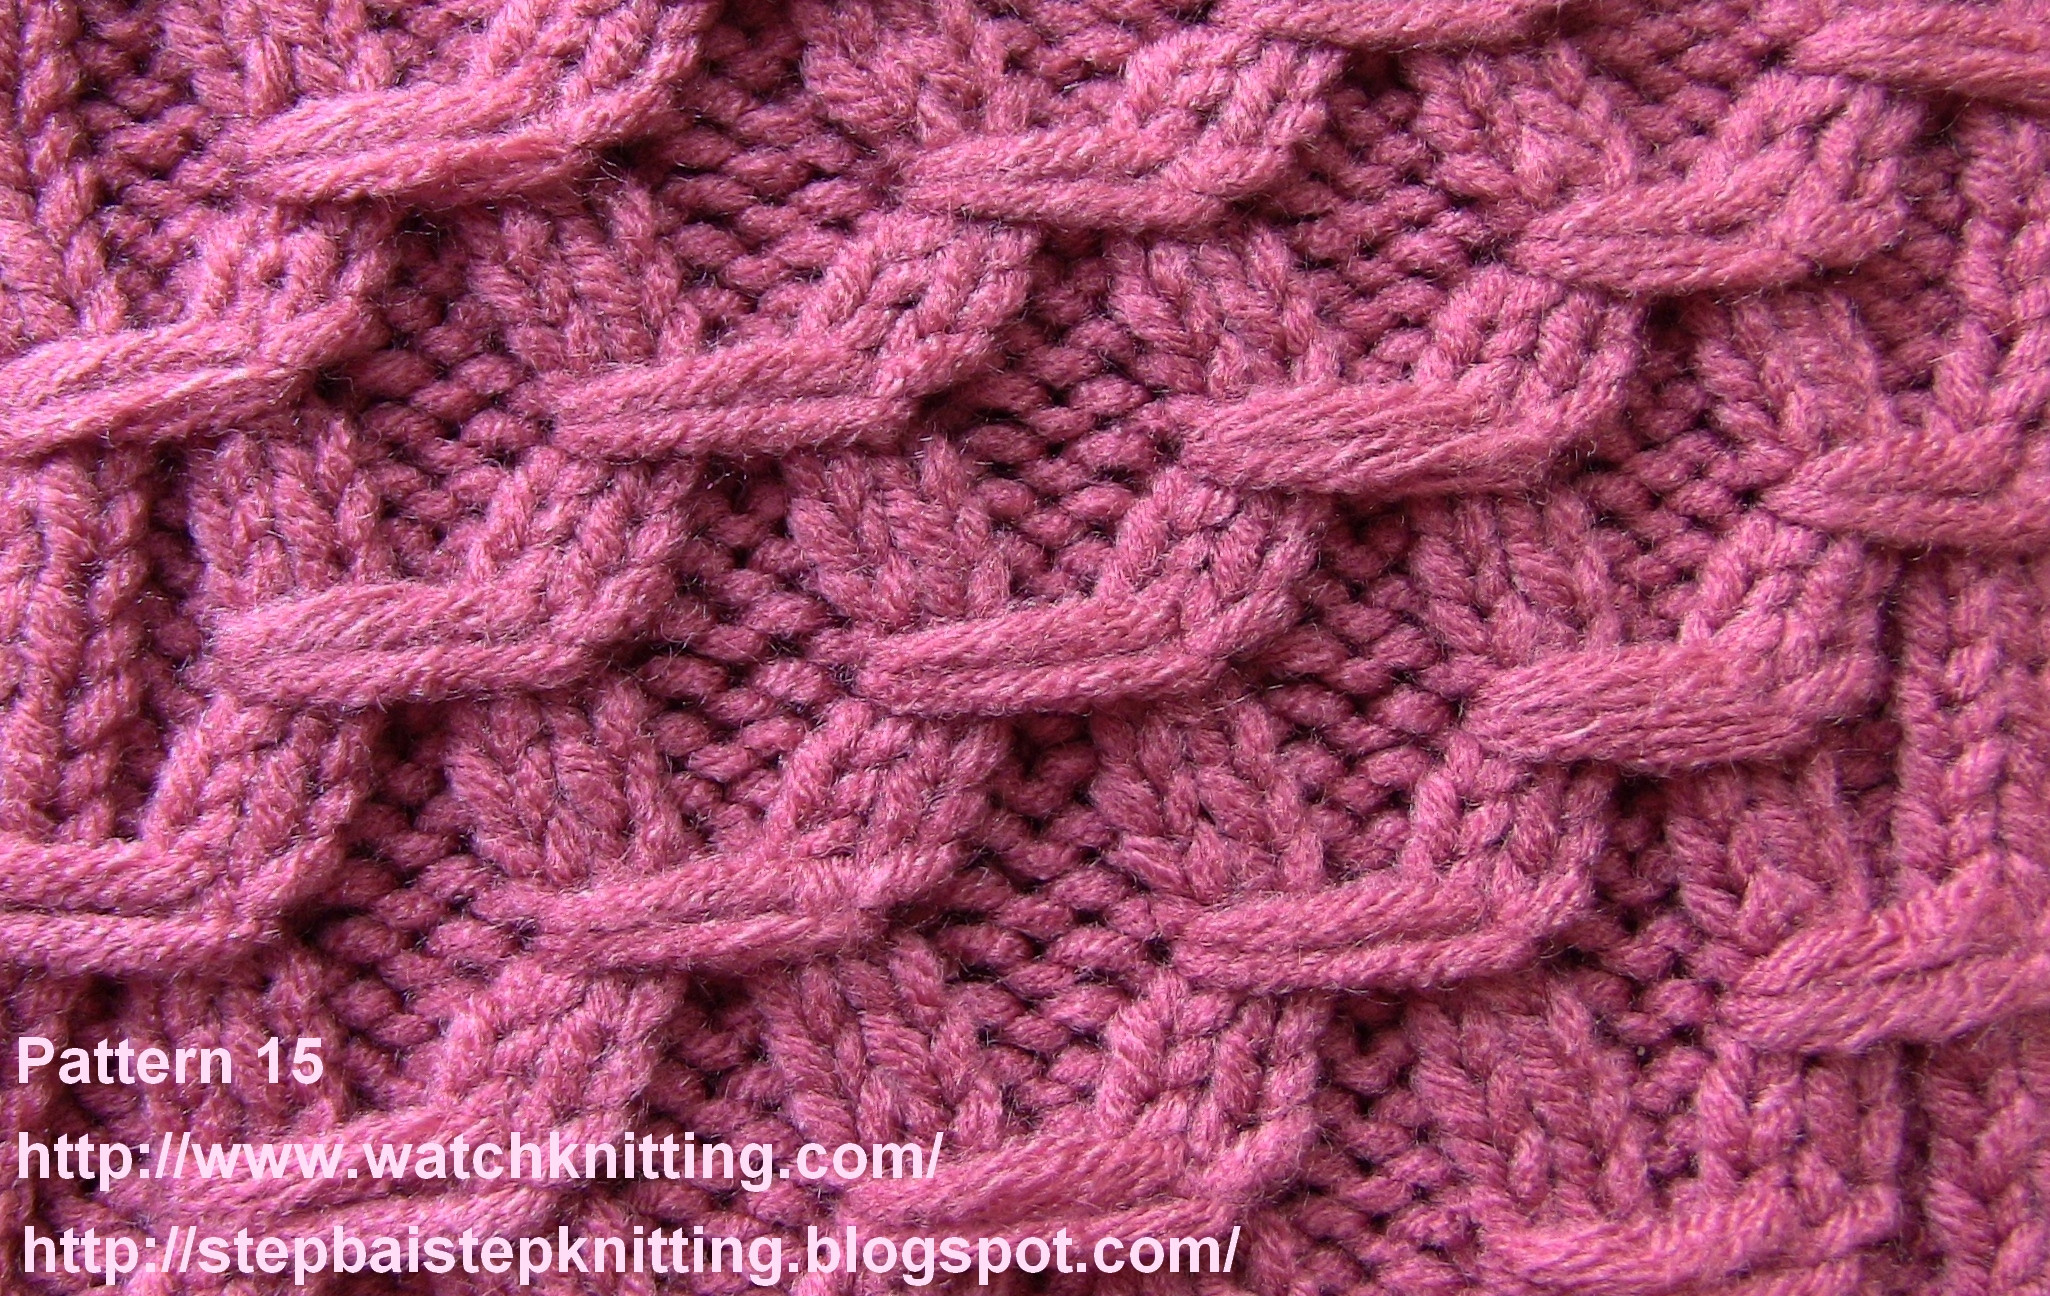 Lovely Patterns for Knitting Knitting and Crochet Patterns Of Luxury Simple Knitting Patterns 8 Crochet and Knit Knitting and Crochet Patterns